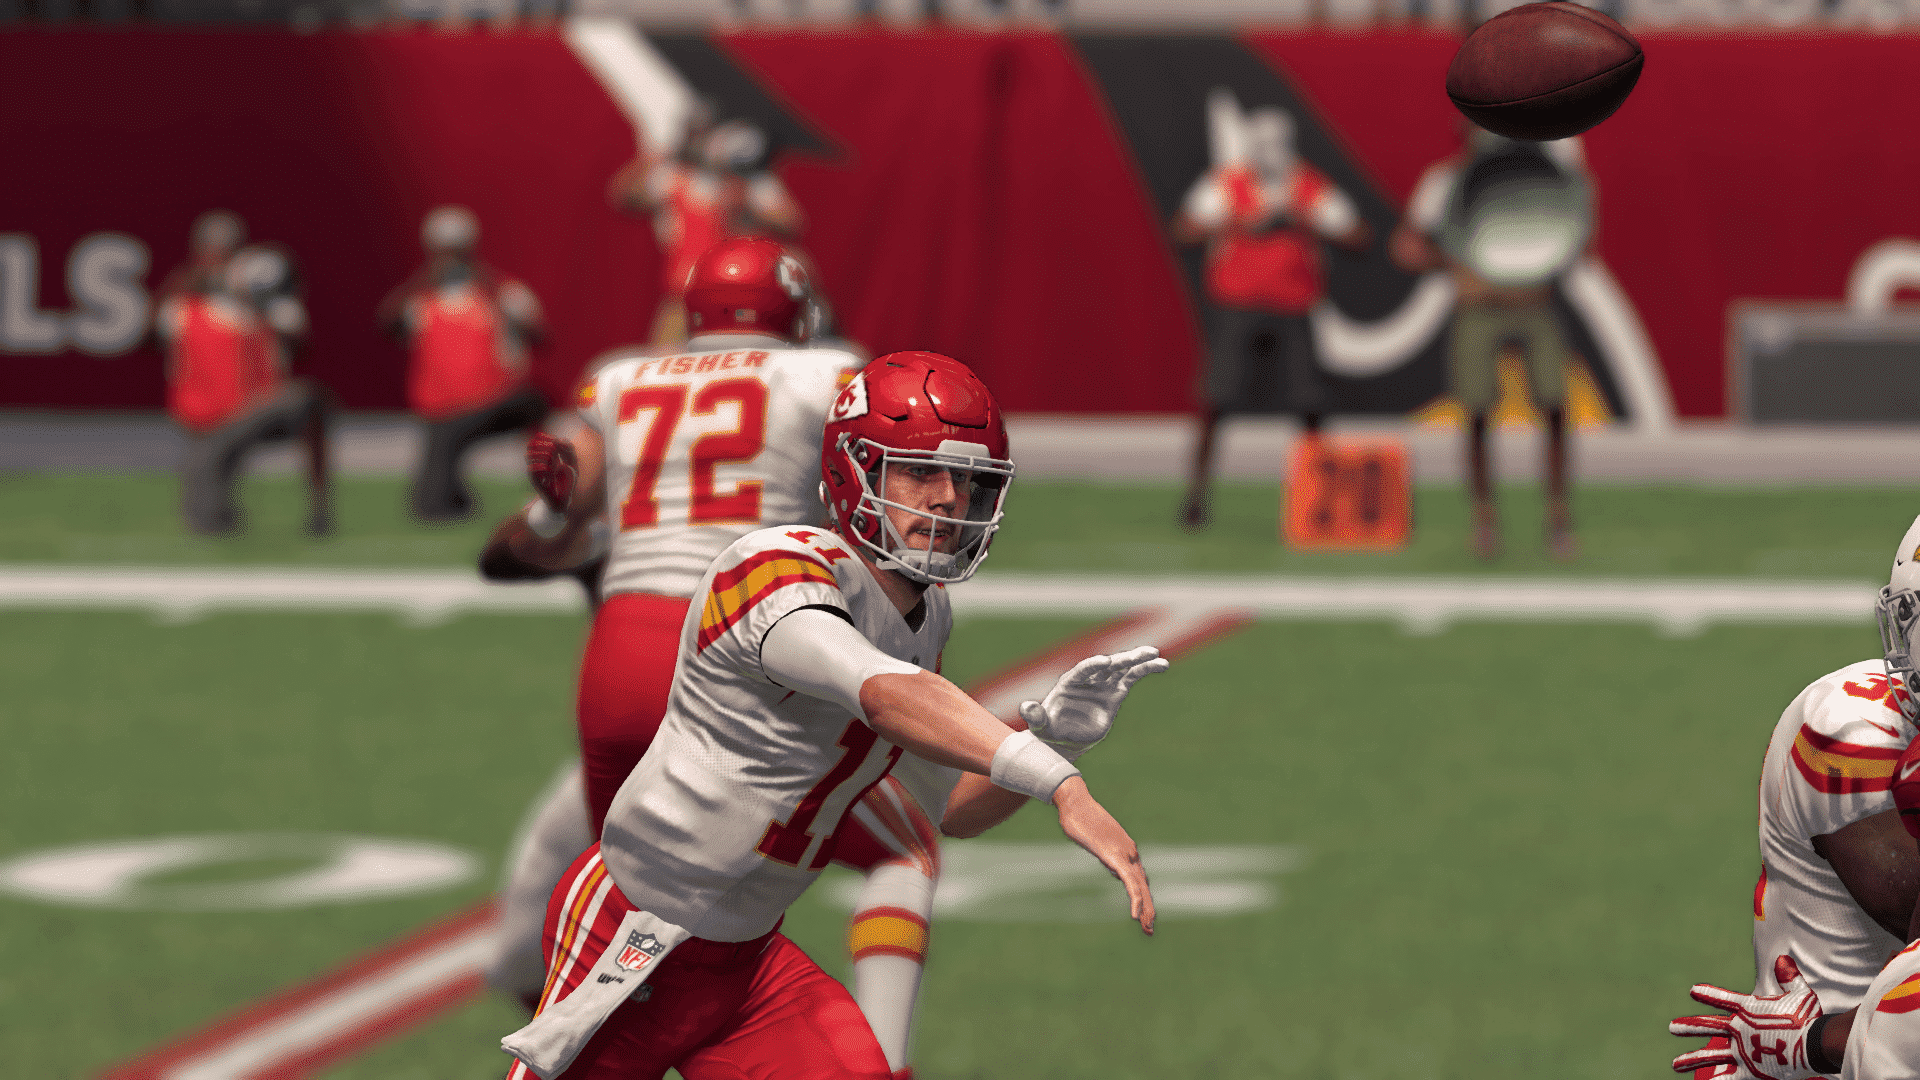 Madden-17-Alex-Smith-2016-12-16 23-14-05